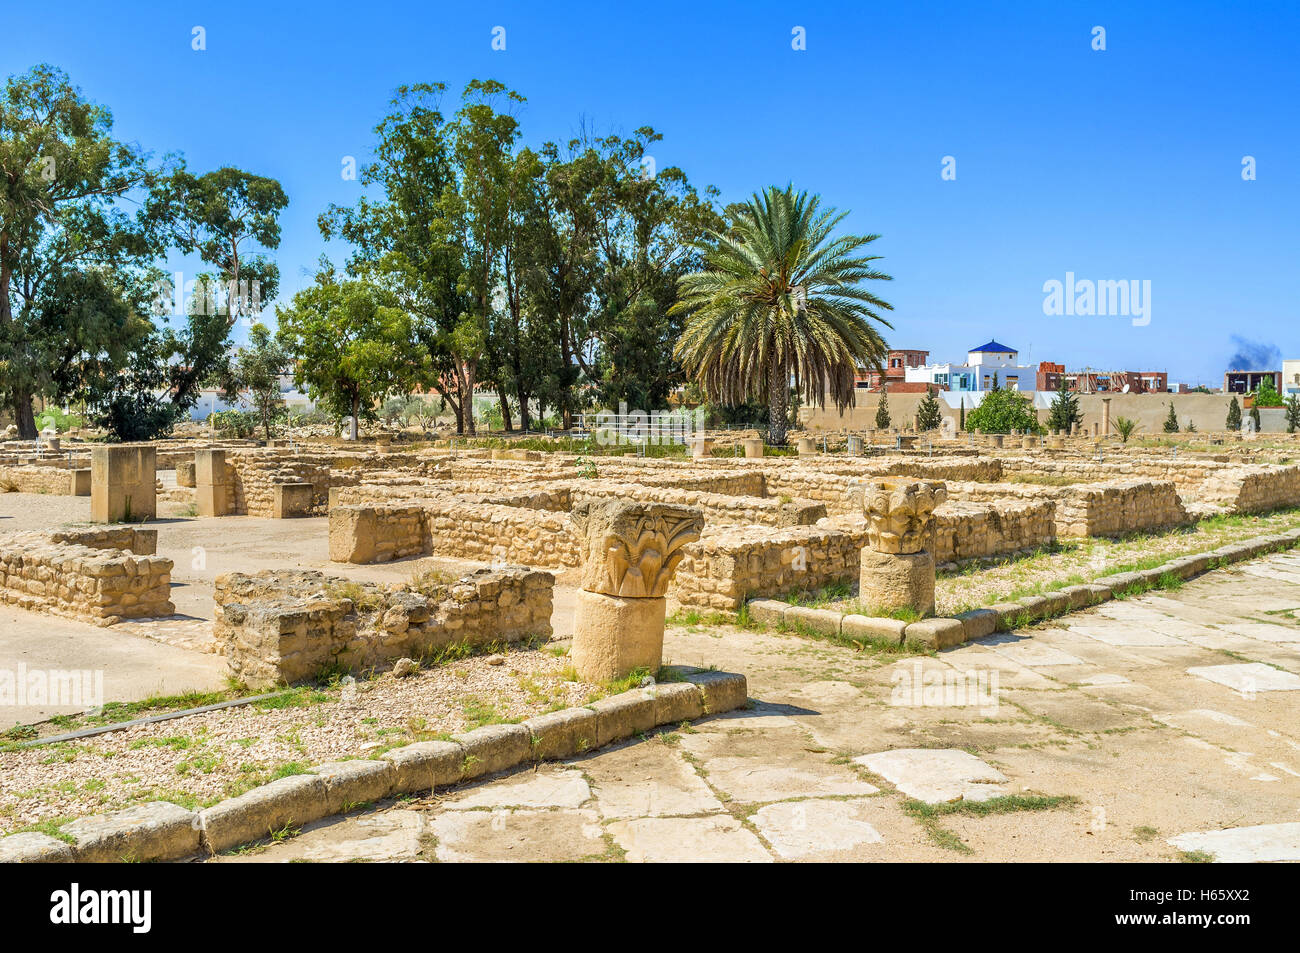 Many Tunisian towns boast archaeological sites and museums with Punic and Roman antiquities, EL Jem is not exception, - Stock Image